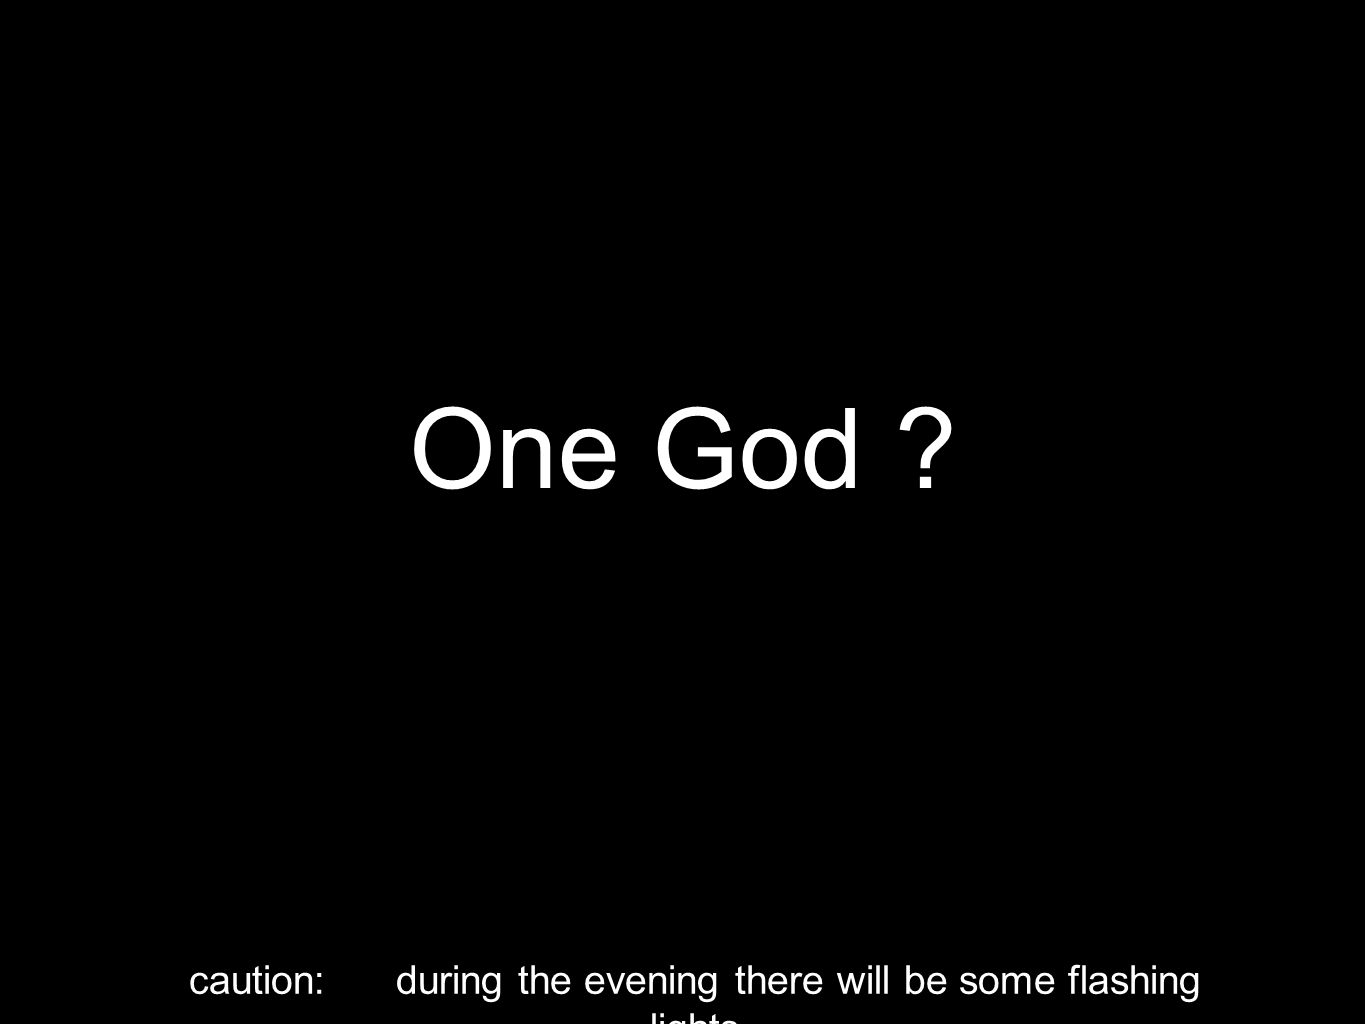 One God ? caution: during the evening there will be some flashing lights